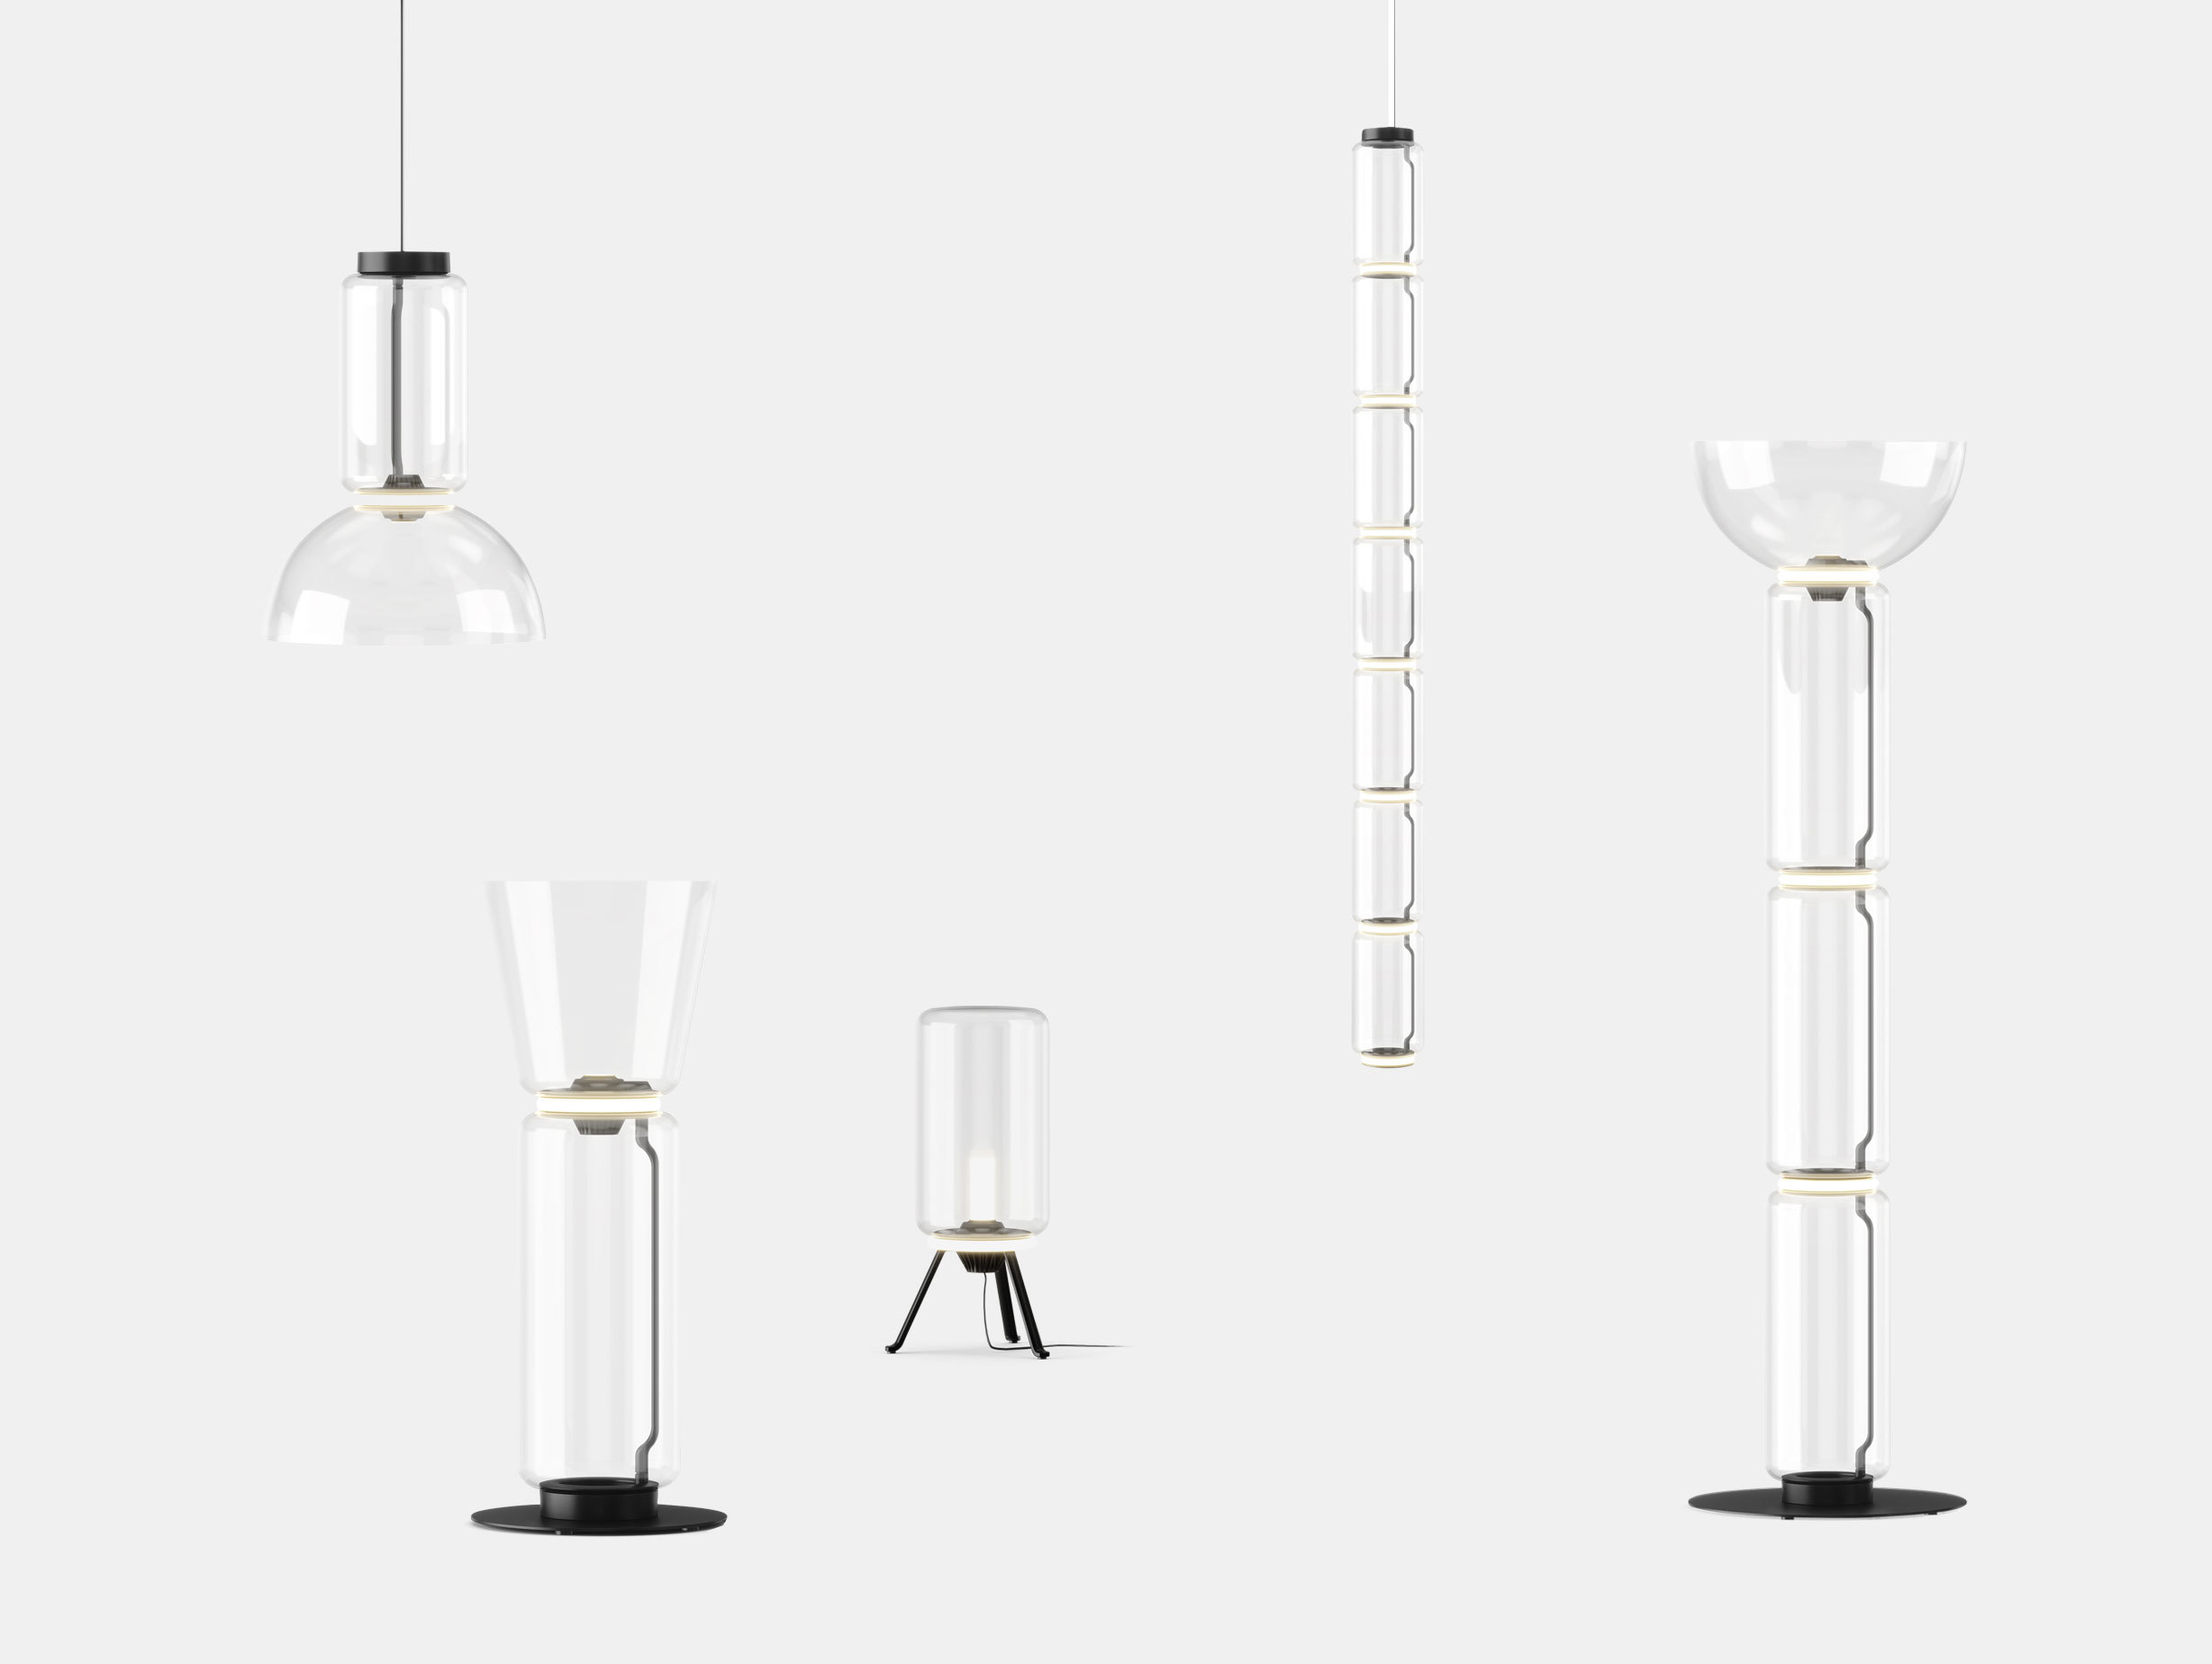 Flos Noctambule Light Collection Konstantin Grcic